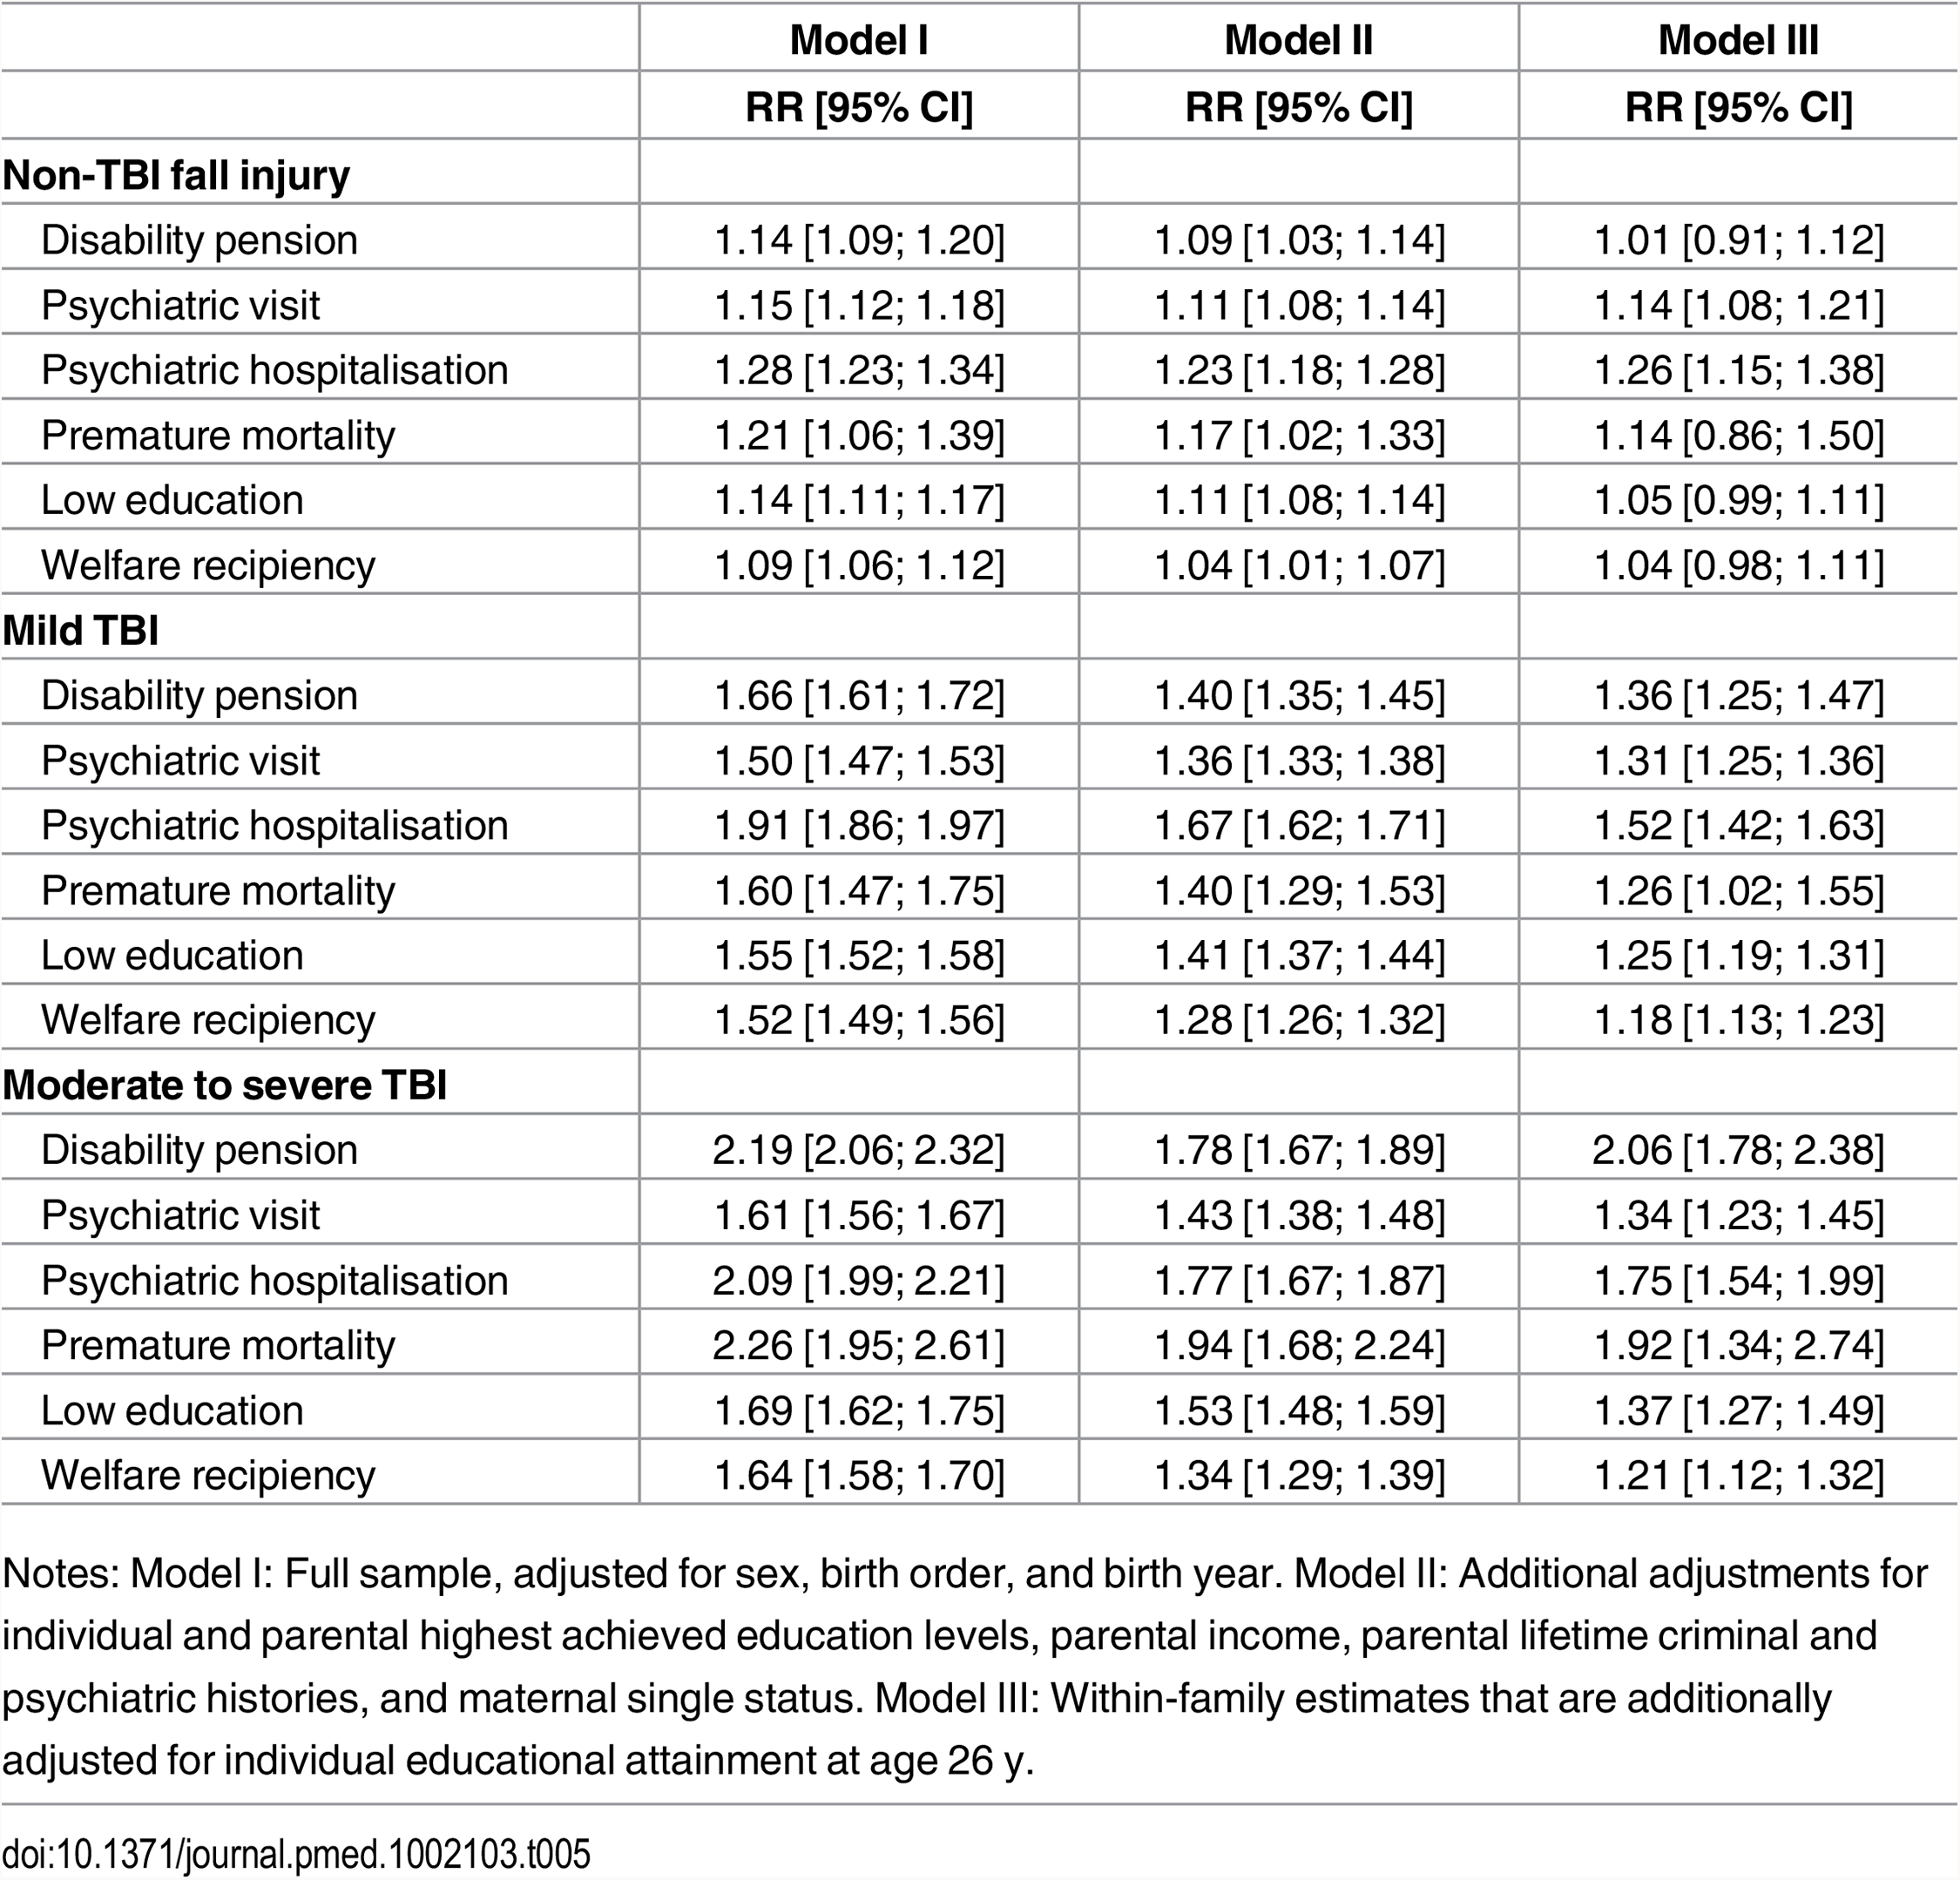 Relative risks (RR) and corresponding 95% confidence intervals (CIs) for the associations between non-TBI fall injuries, mild TBI and moderate to severe TBI up to age 25 y on adulthood poor functioning.